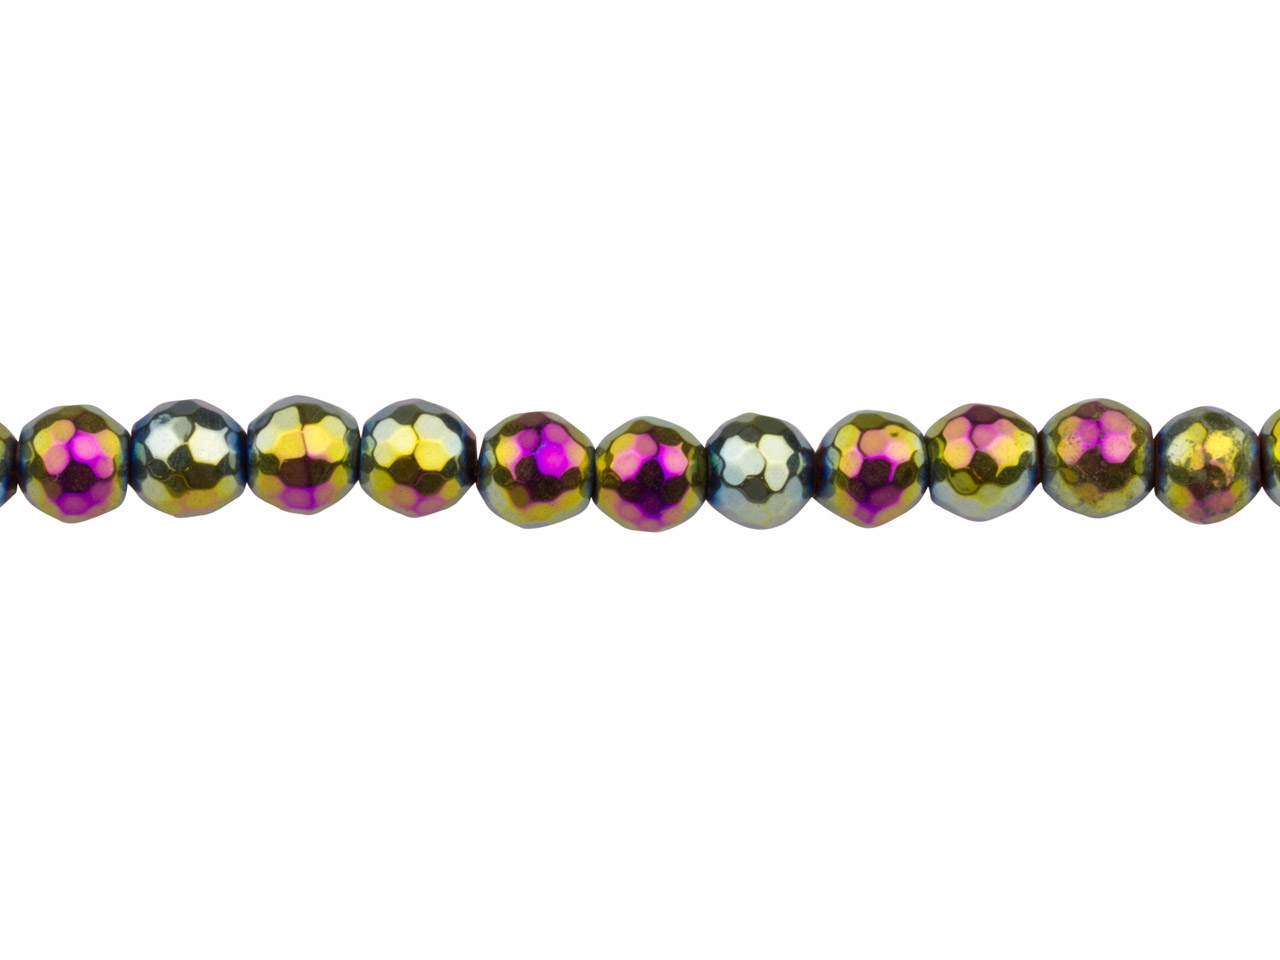 Electroplated Hematite Semi        Precious Faceted Round Beads,      Rainbow, 6mm, 16